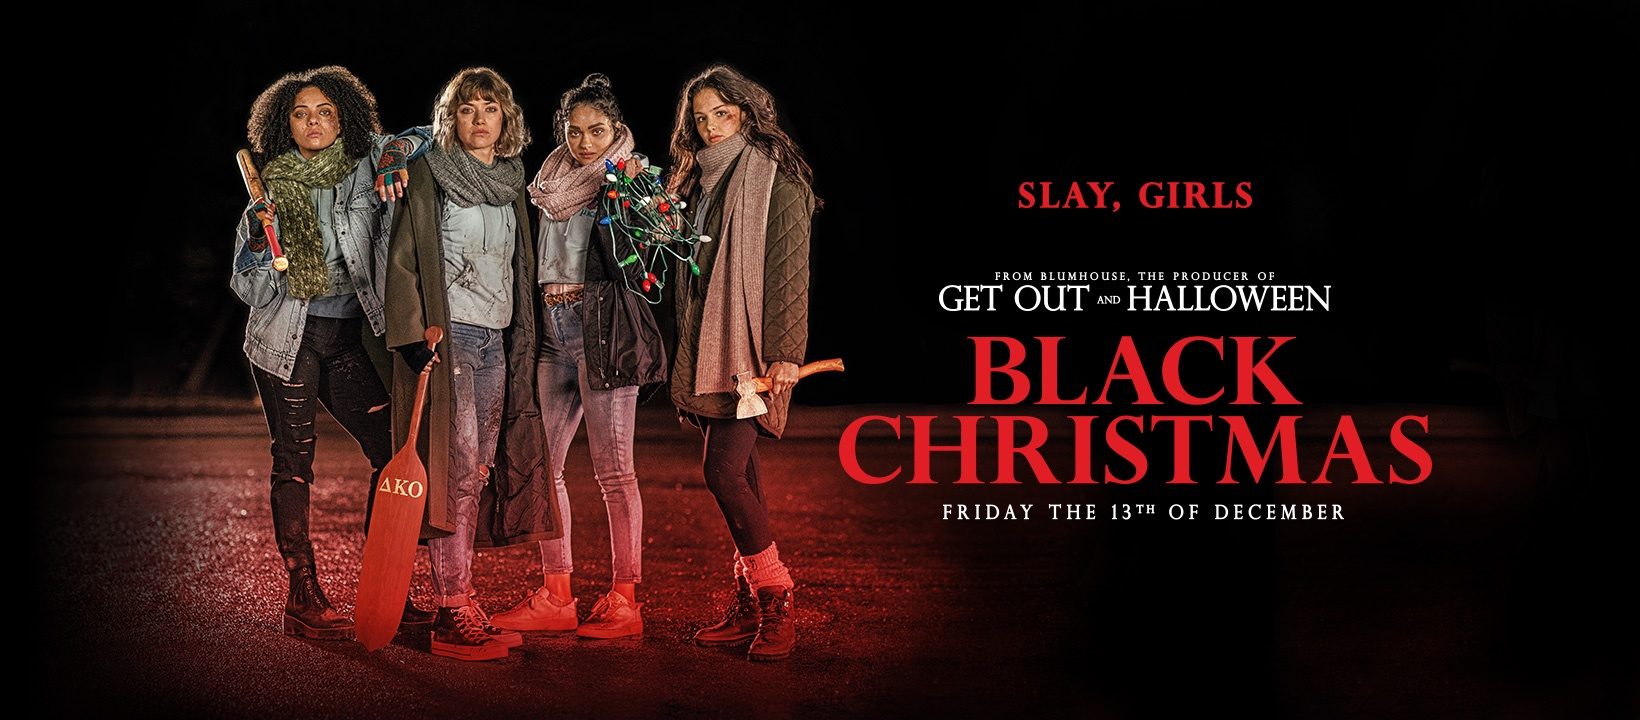 Black Christmas 2019 (Source: We Live Entertainment)